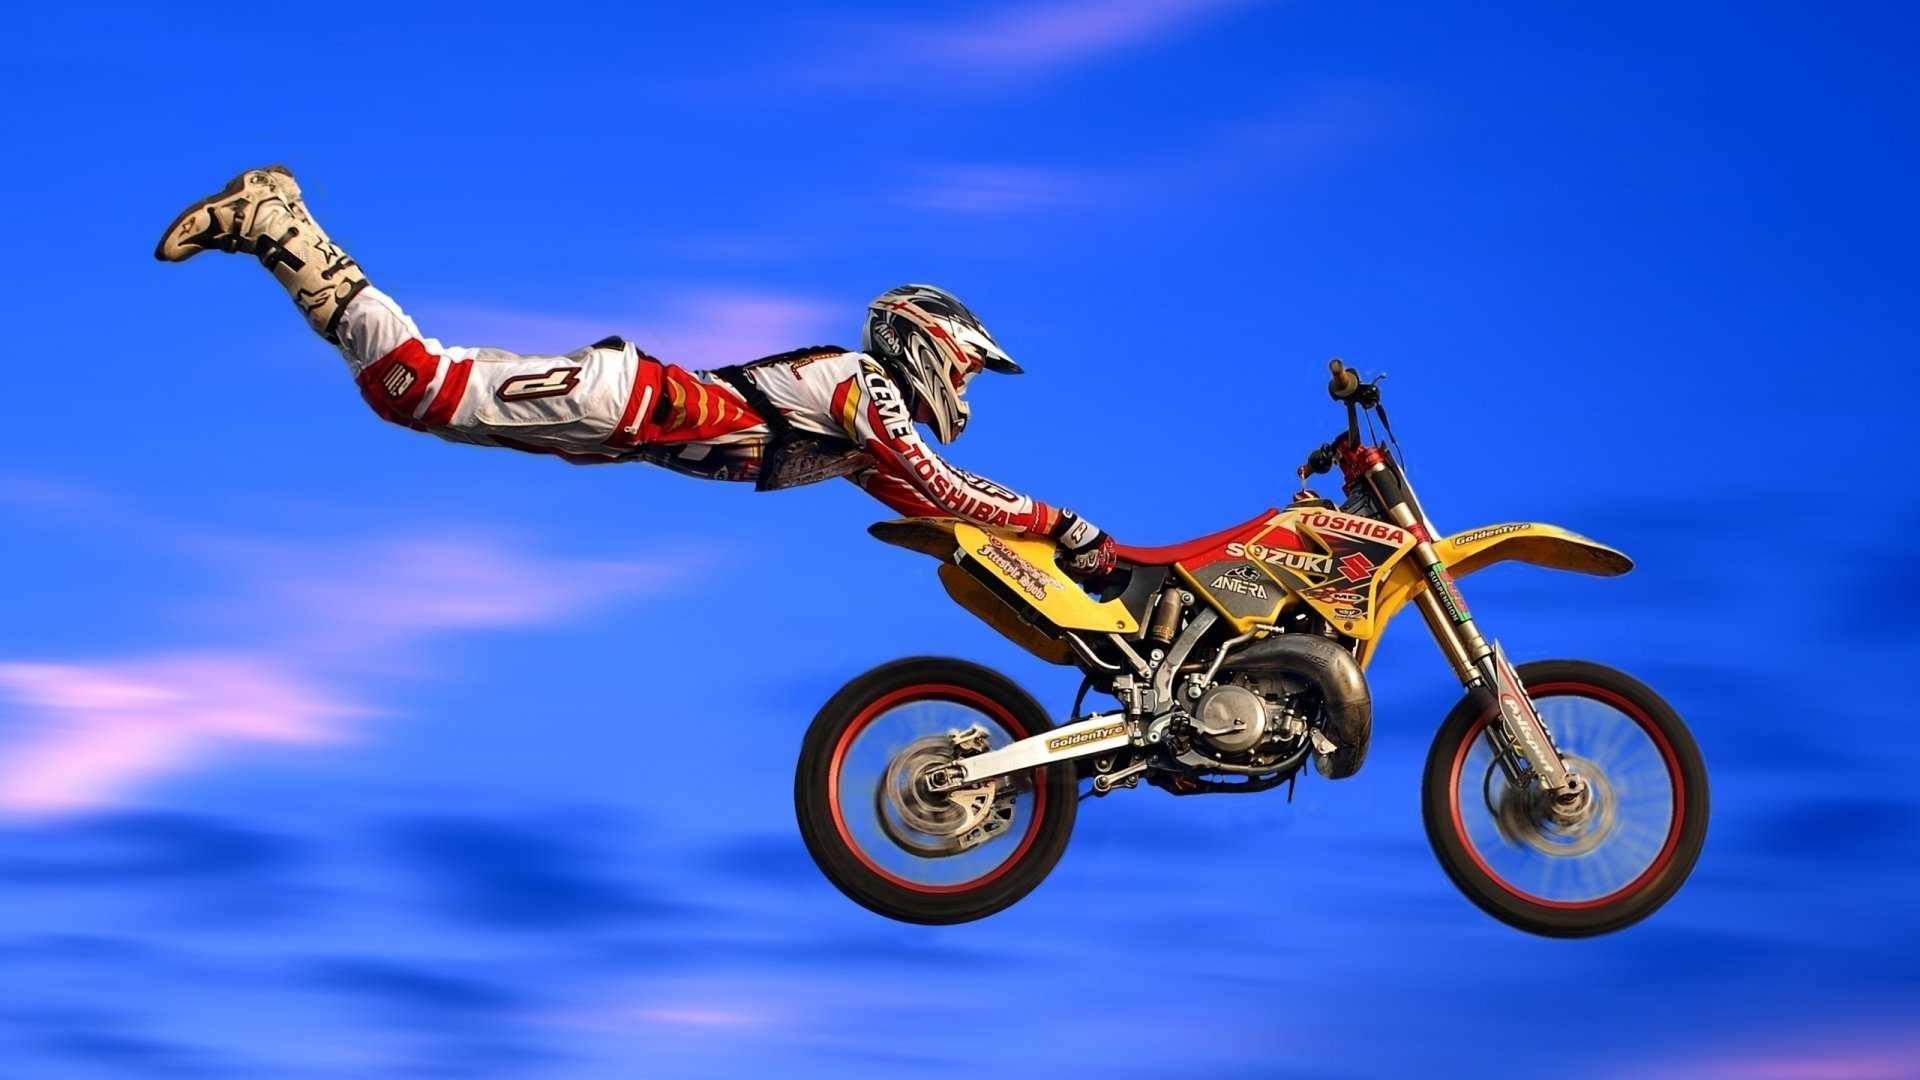 114 motocross hd wallpapers | background images - wallpaper abyss